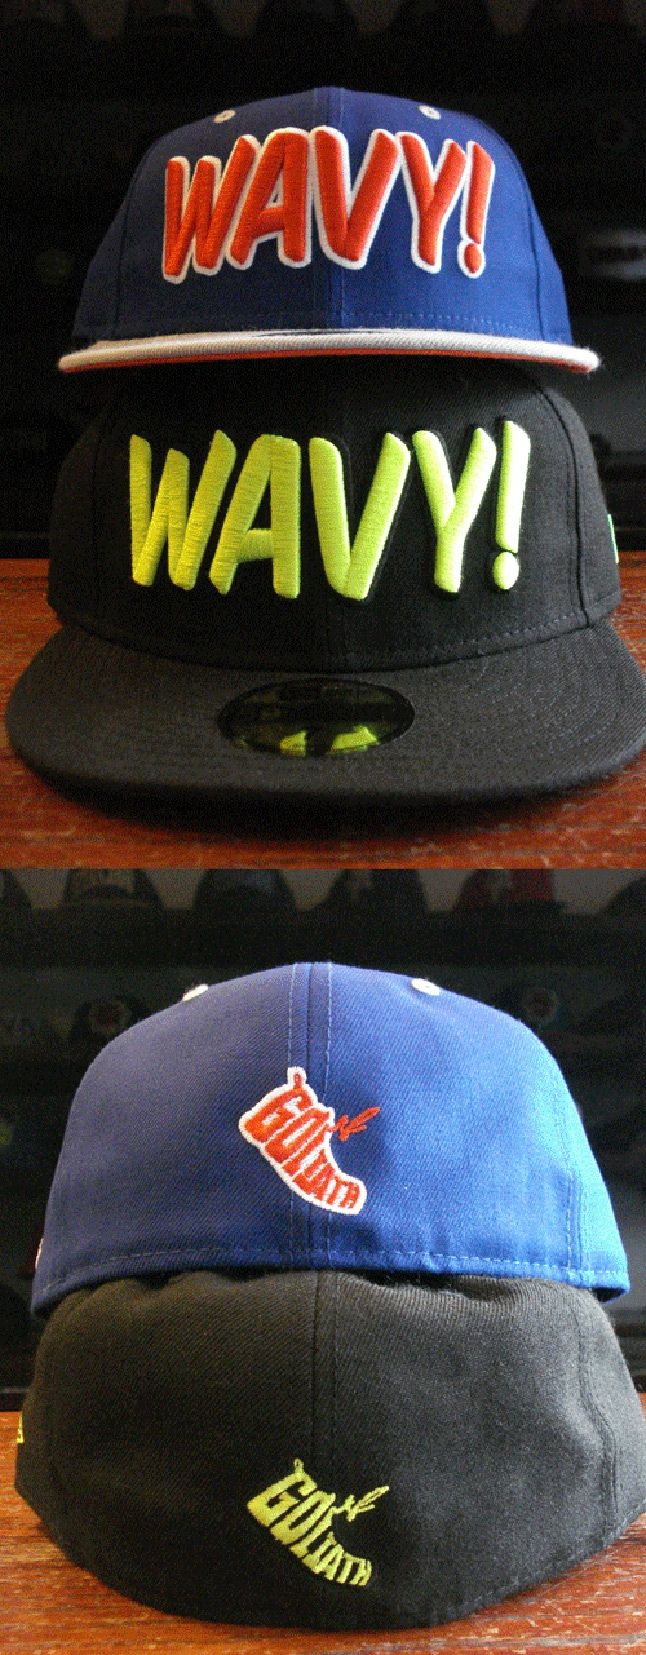 Goliath Wavy Fitteds 1